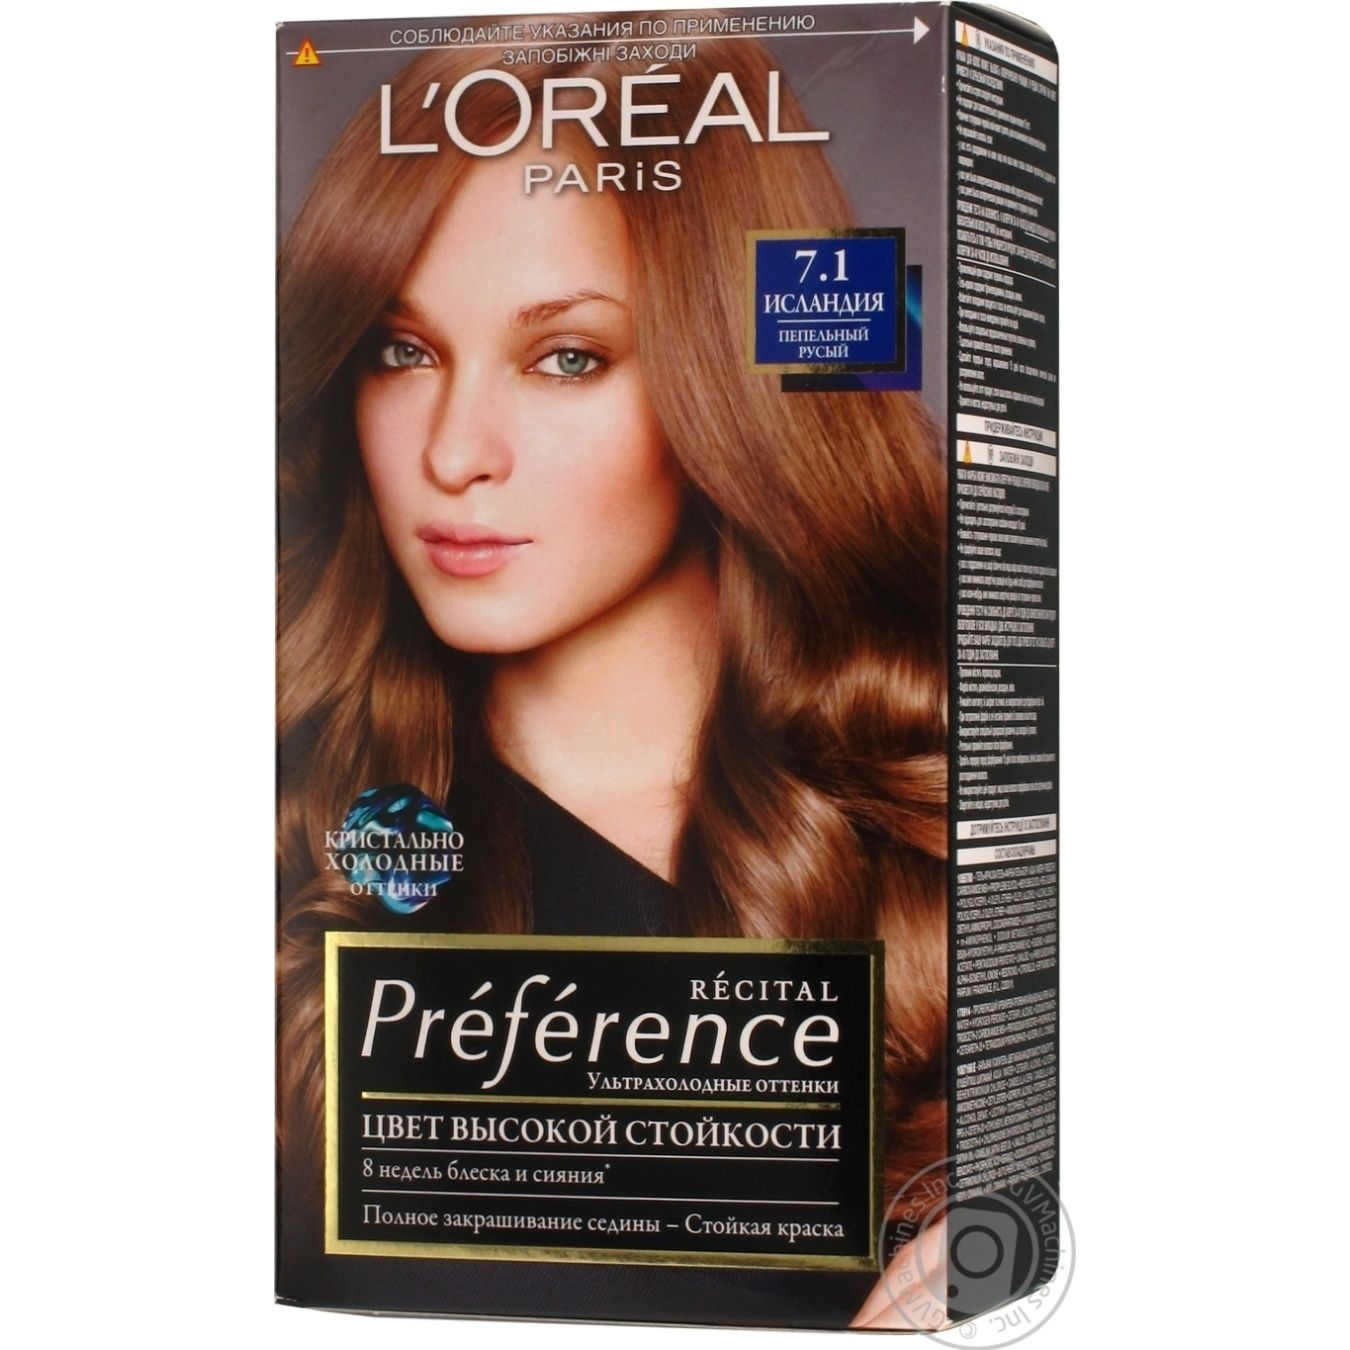 Color Loreal Preference Ash Brown For Hair Hygiene Hair Care